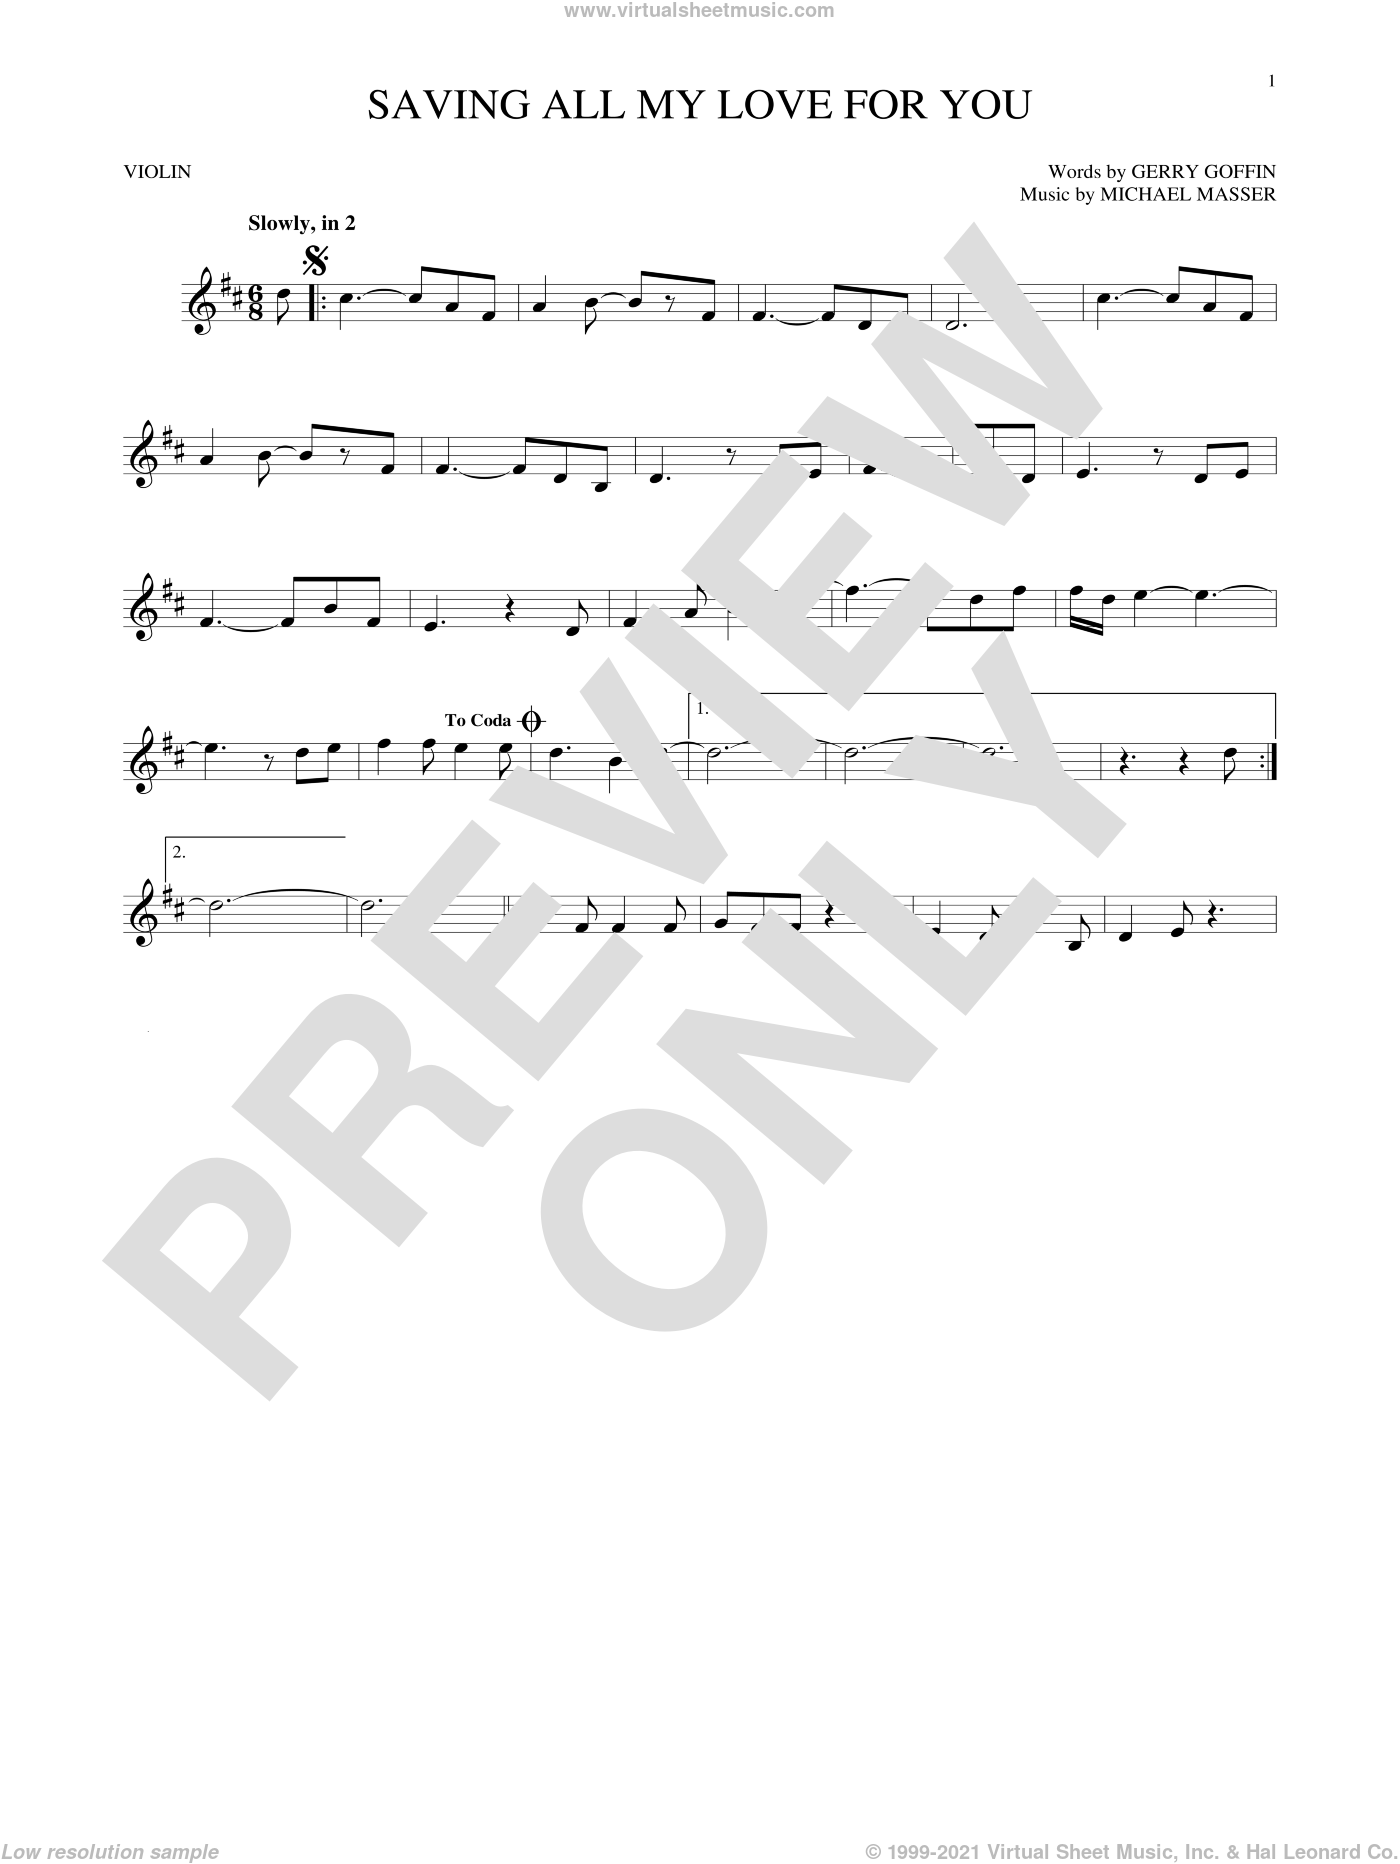 Saving All My Love For You sheet music for violin solo by Whitney Houston, Gerry Goffin and Michael Masser, intermediate skill level